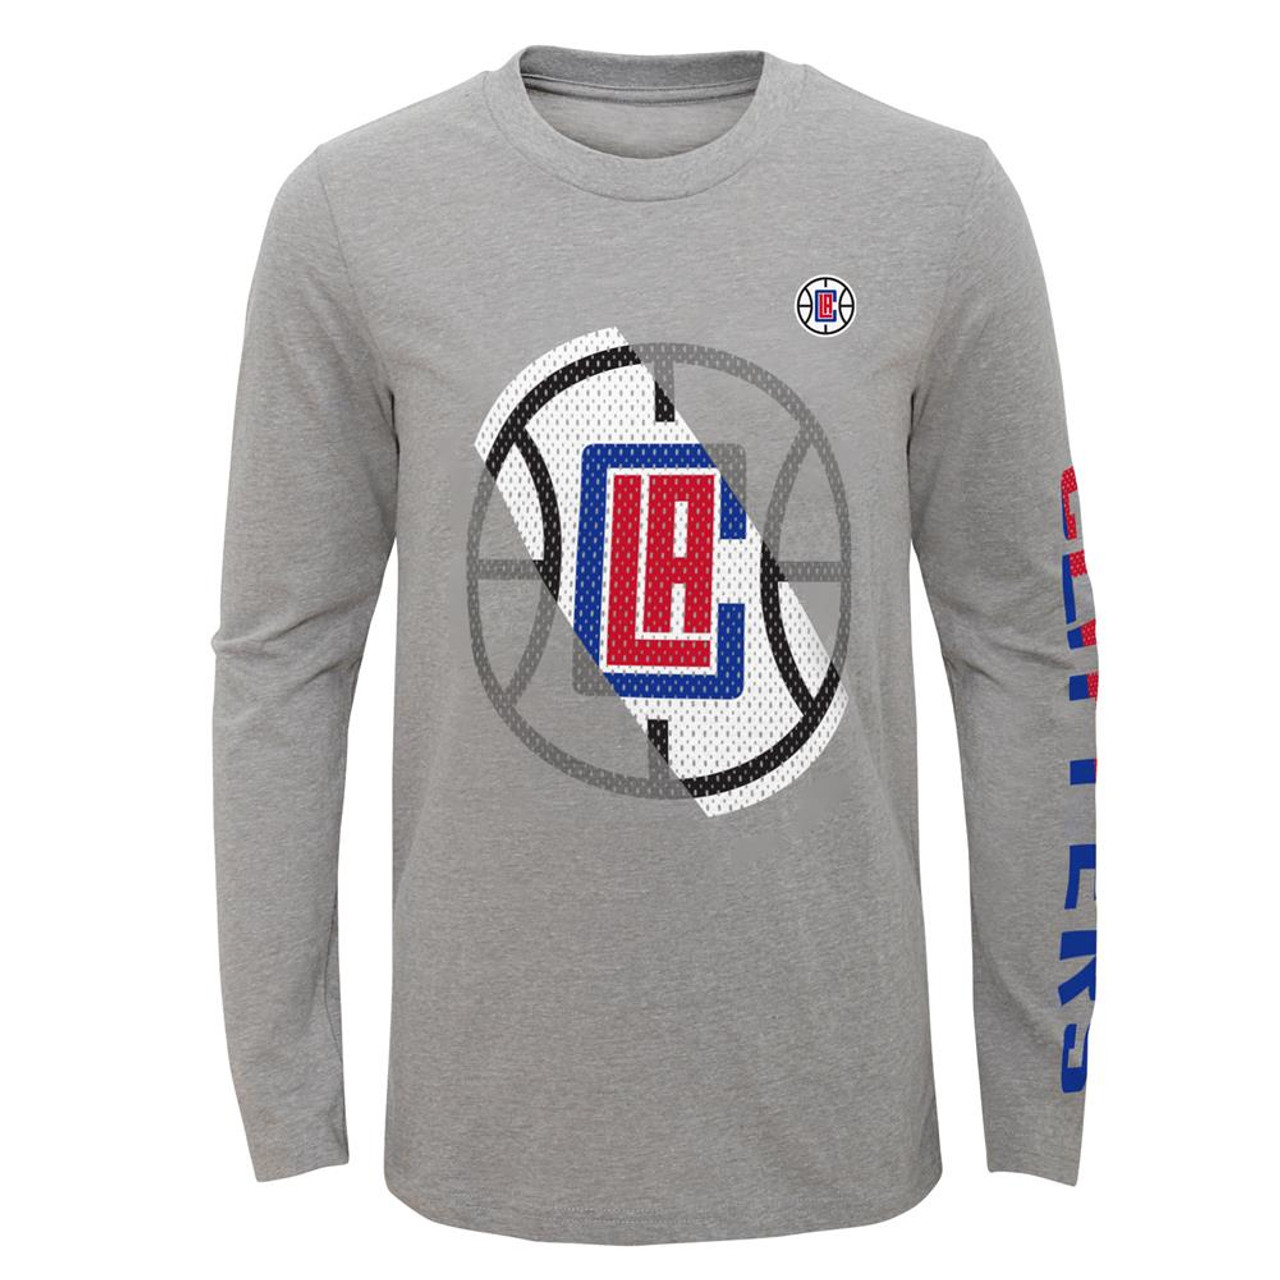 Youth Boys Los Angeles Clippers LA Tee Shirt 3 in 1 Combo Set